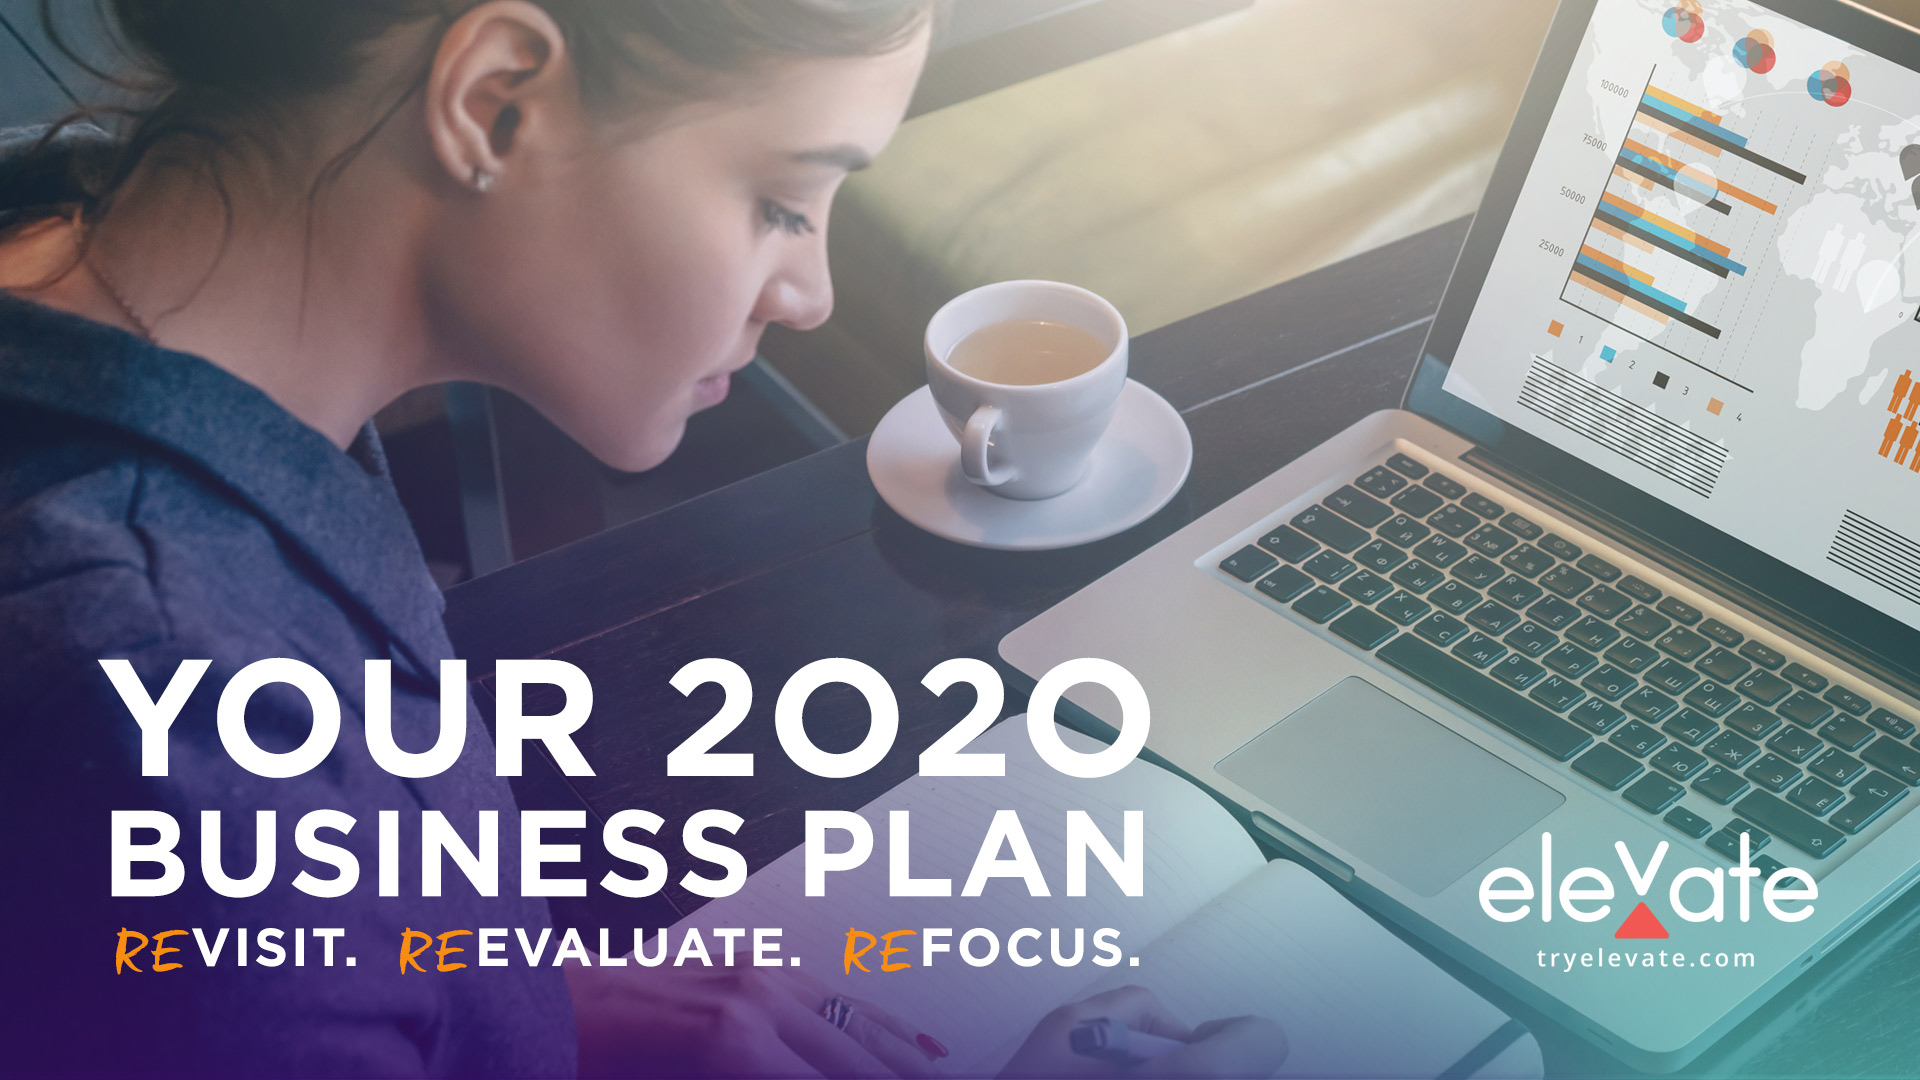 Your 2020 Business Plan: REvisit. REevaluate. REfocus.